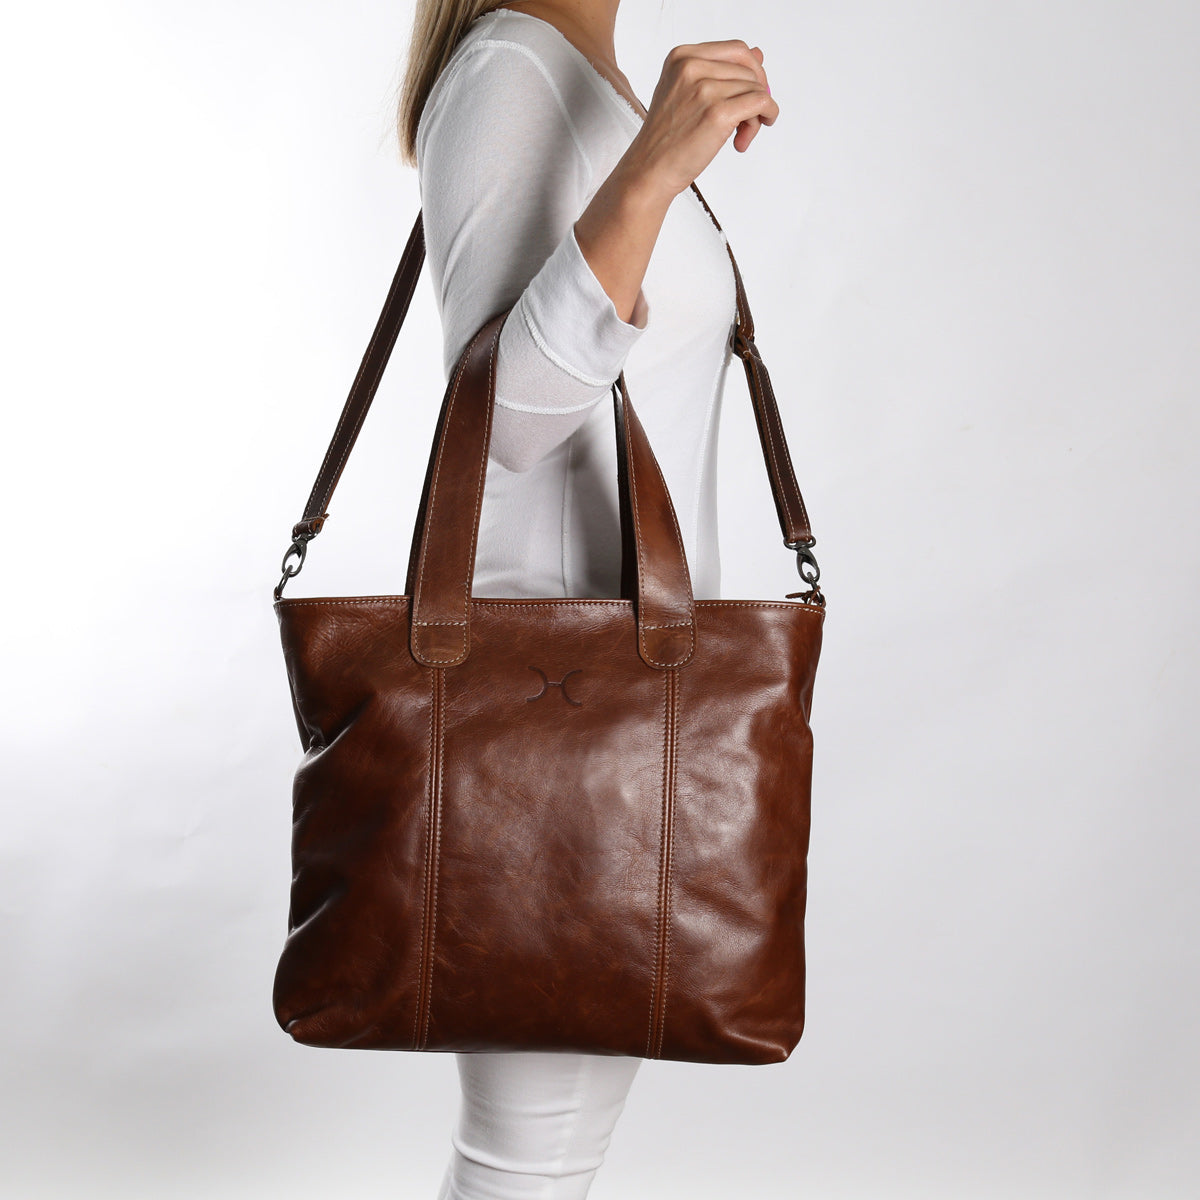 Thandana Jax Handbag - Brown - Zufrique Boutique